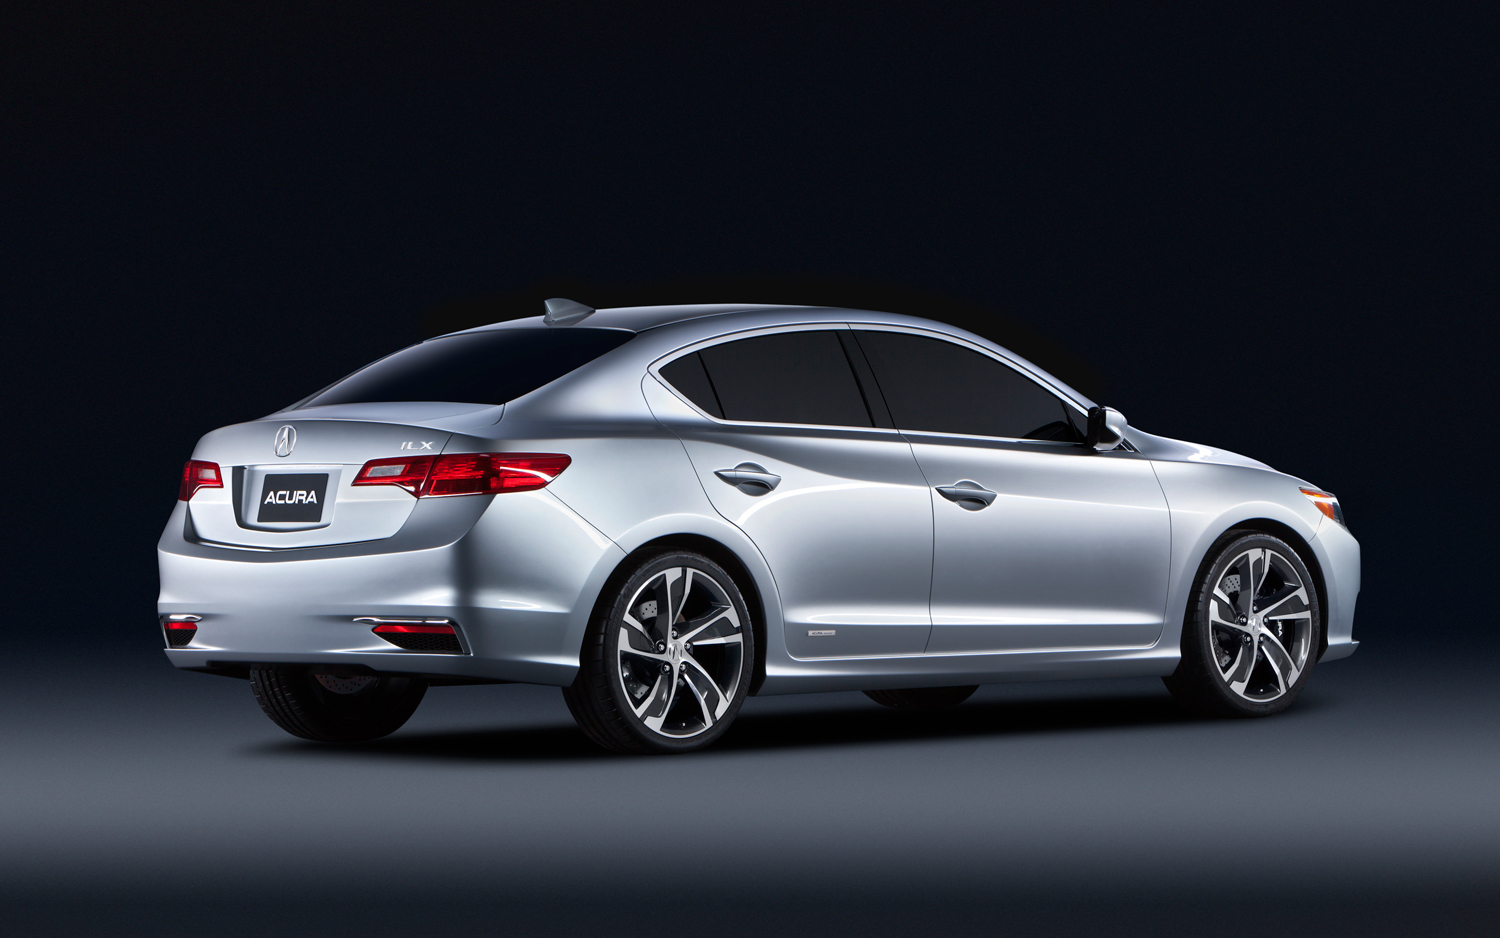 2013 Acura Ilx Information And Photos Momentcar